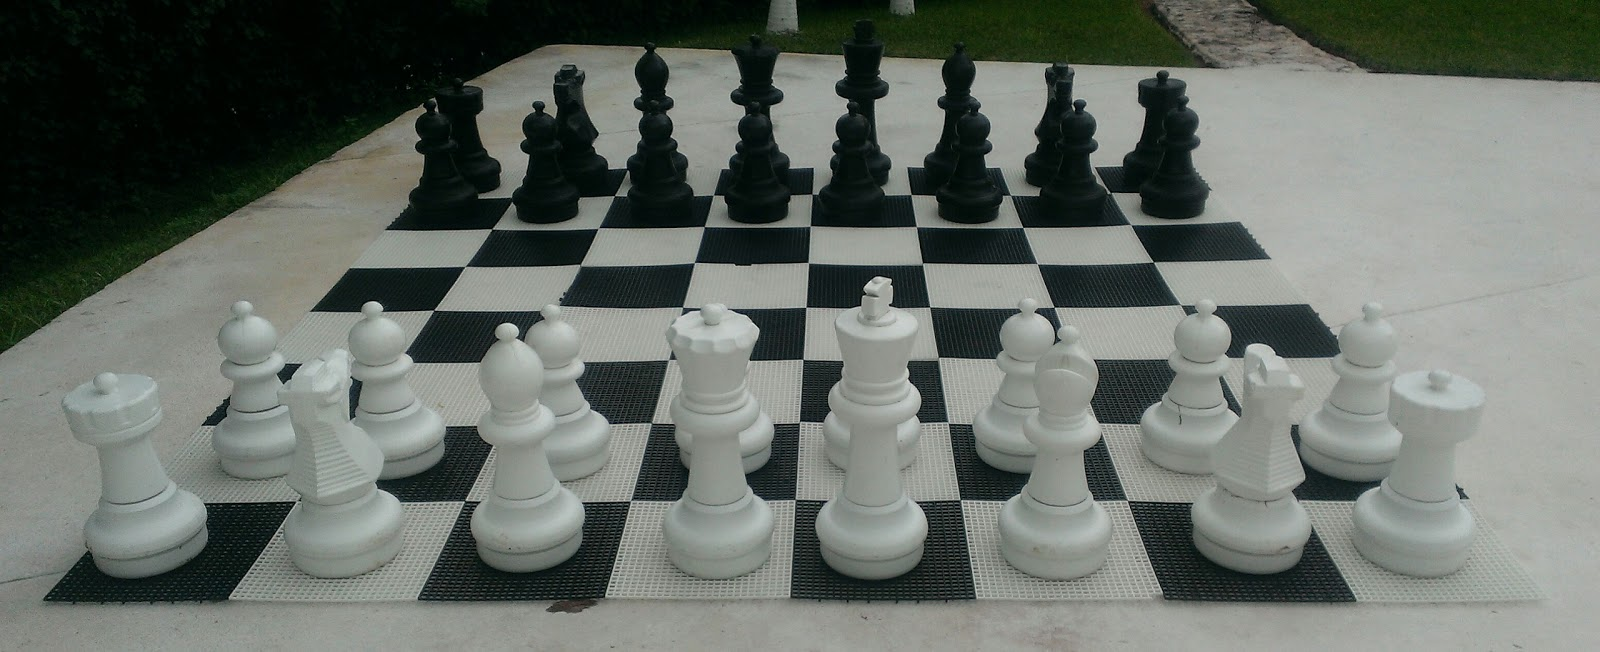 people sized chess set with pieces in home position